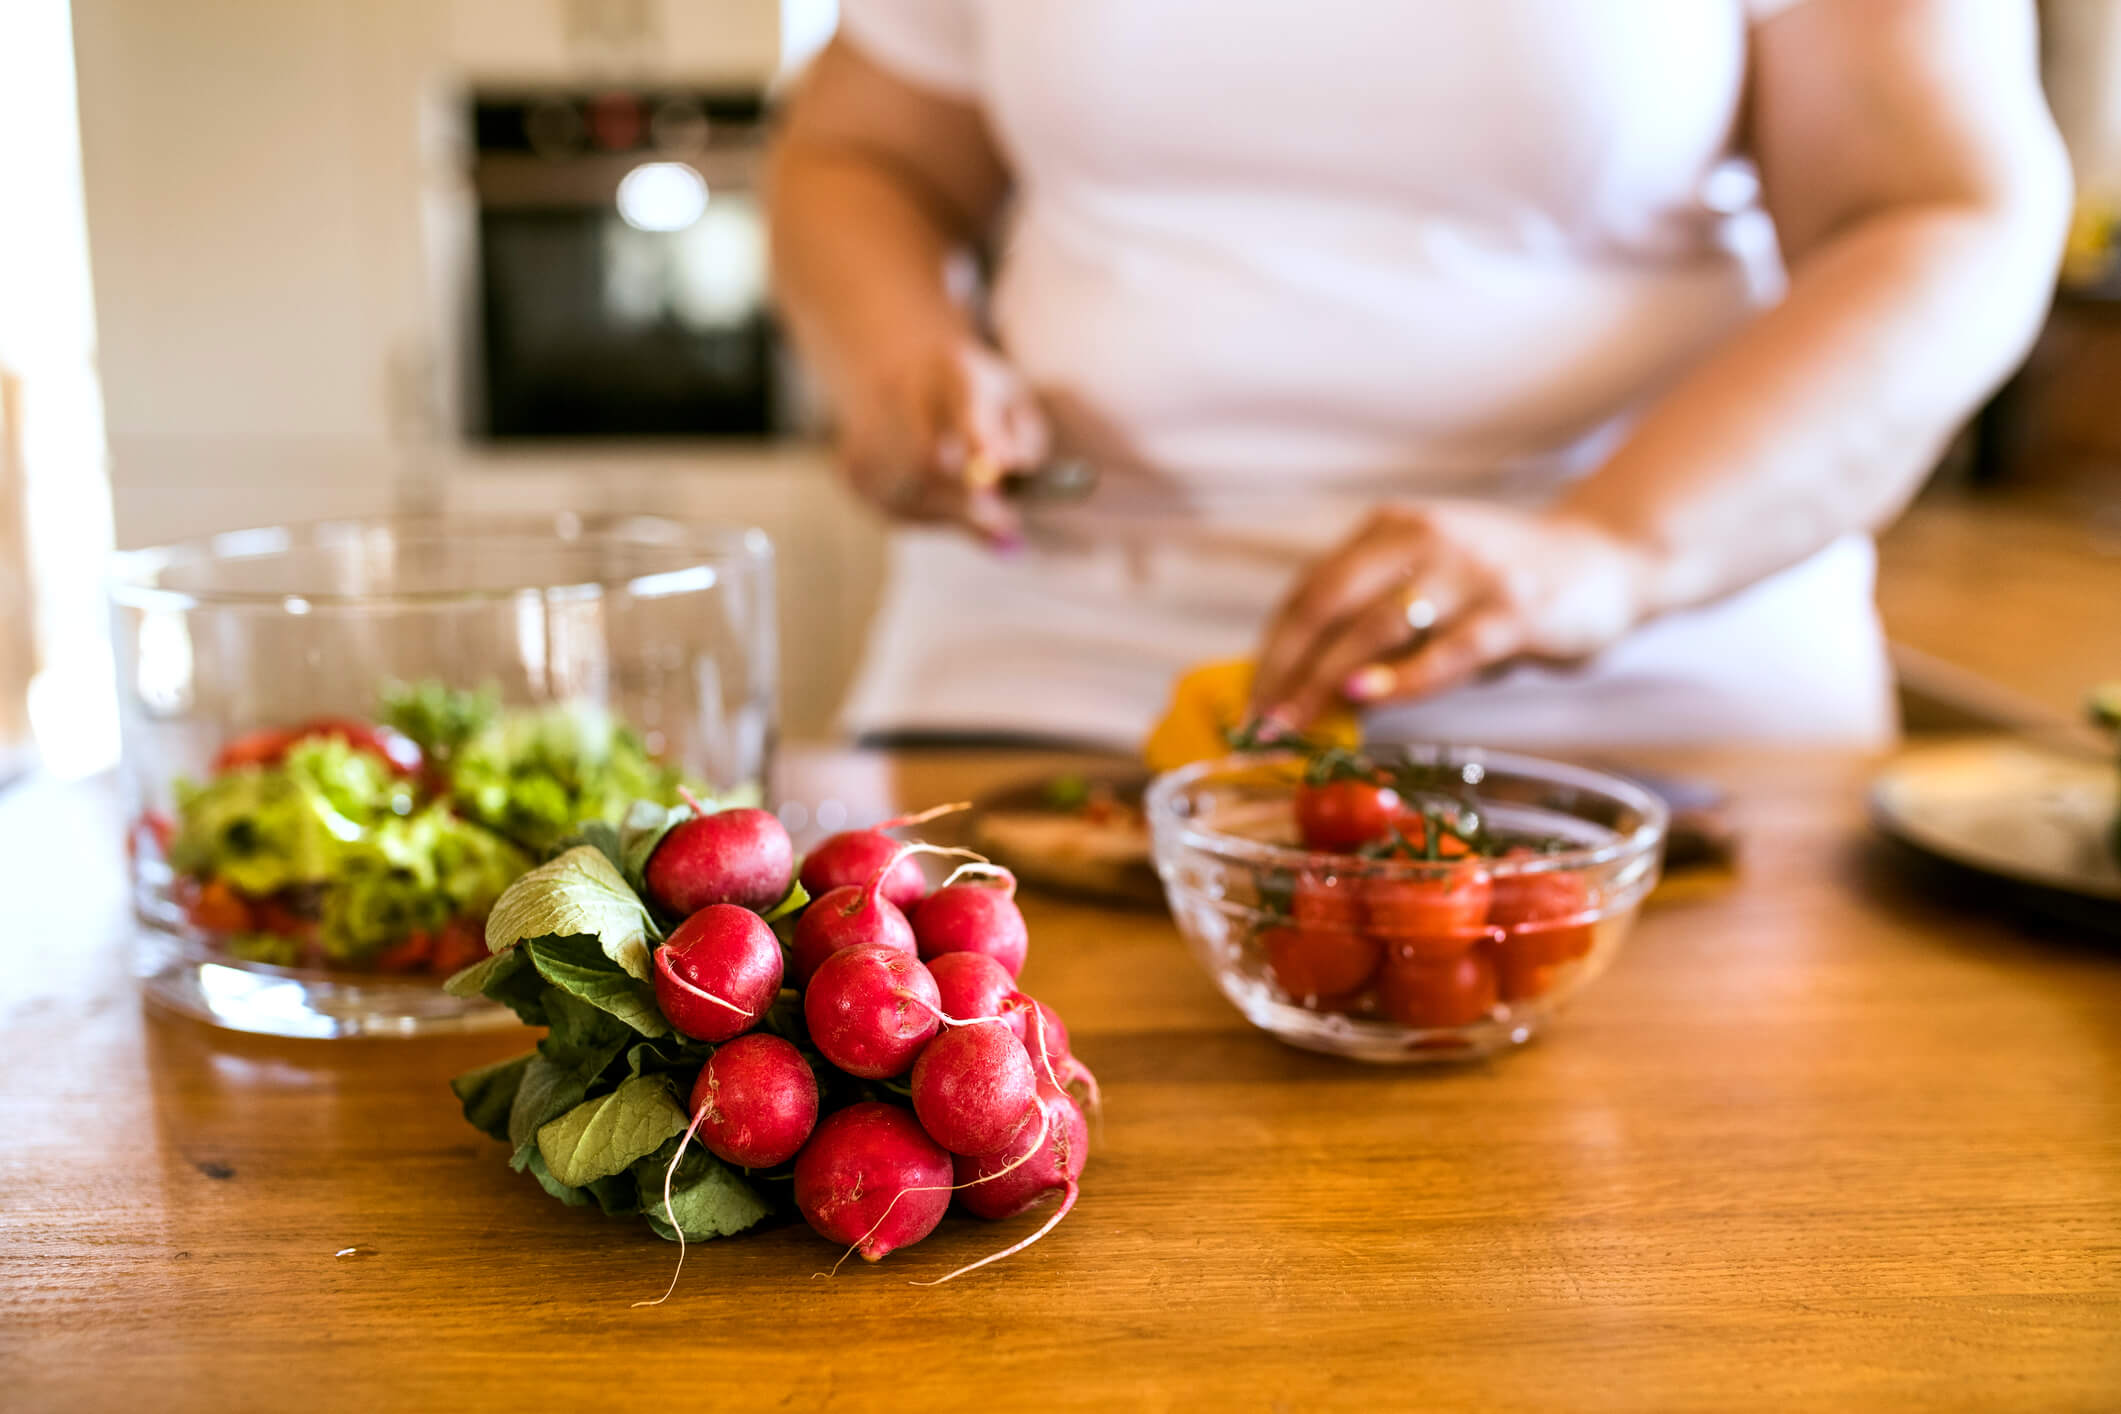 8-6-2018 Unrecognizable overweight woman at home preparing a delicious healthy vegetable salad in her kitchen.